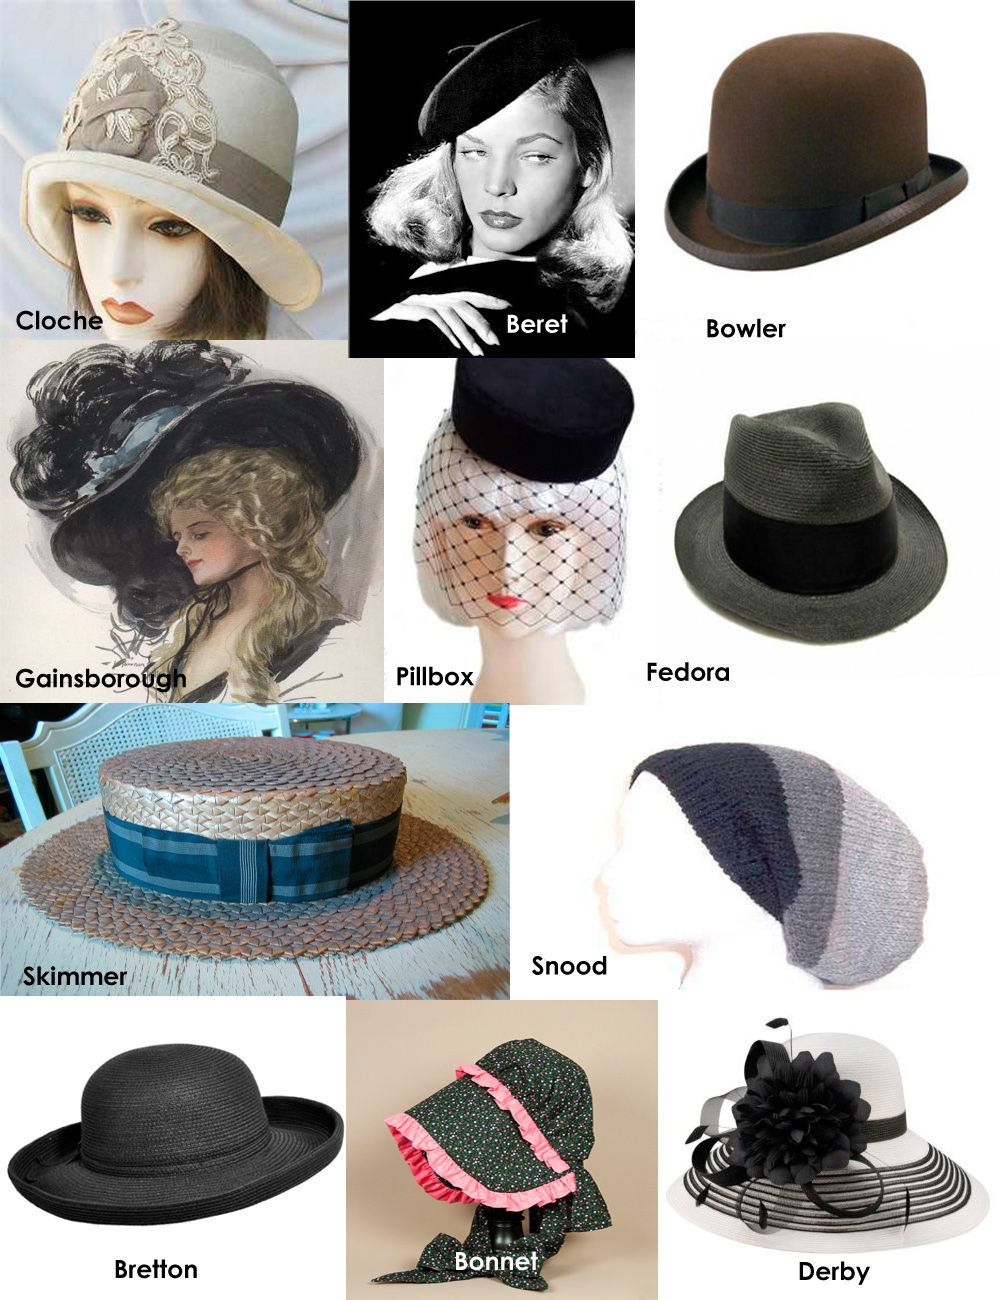 Hat Styles Men And Women Hats For Women Types Of Hats For Women Hat Fashion